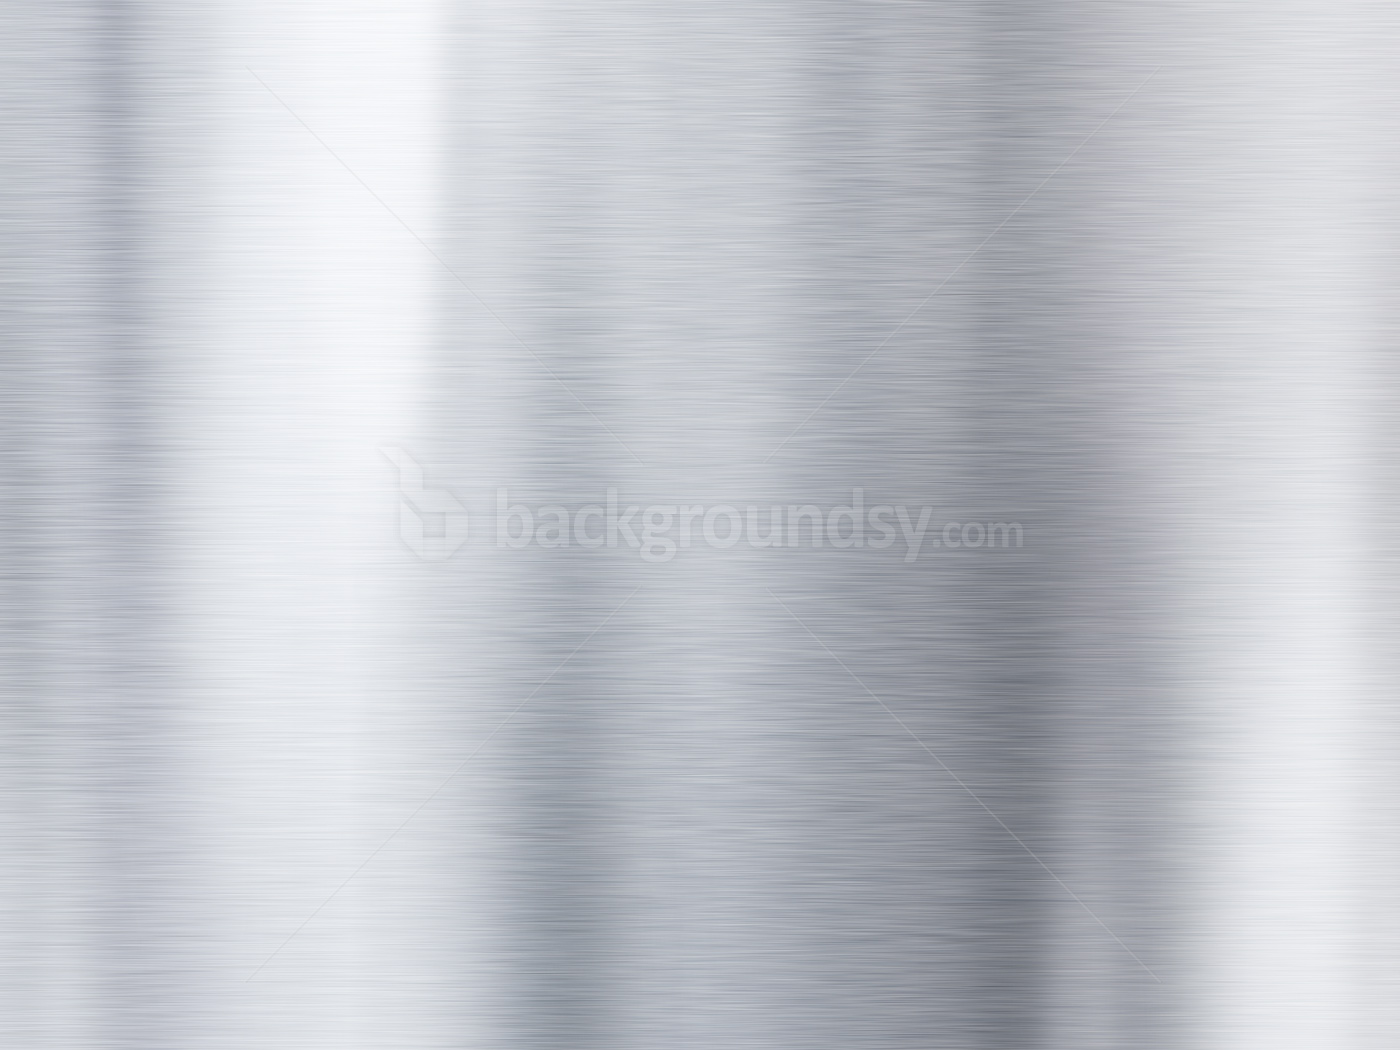 Shiny metallic silver background